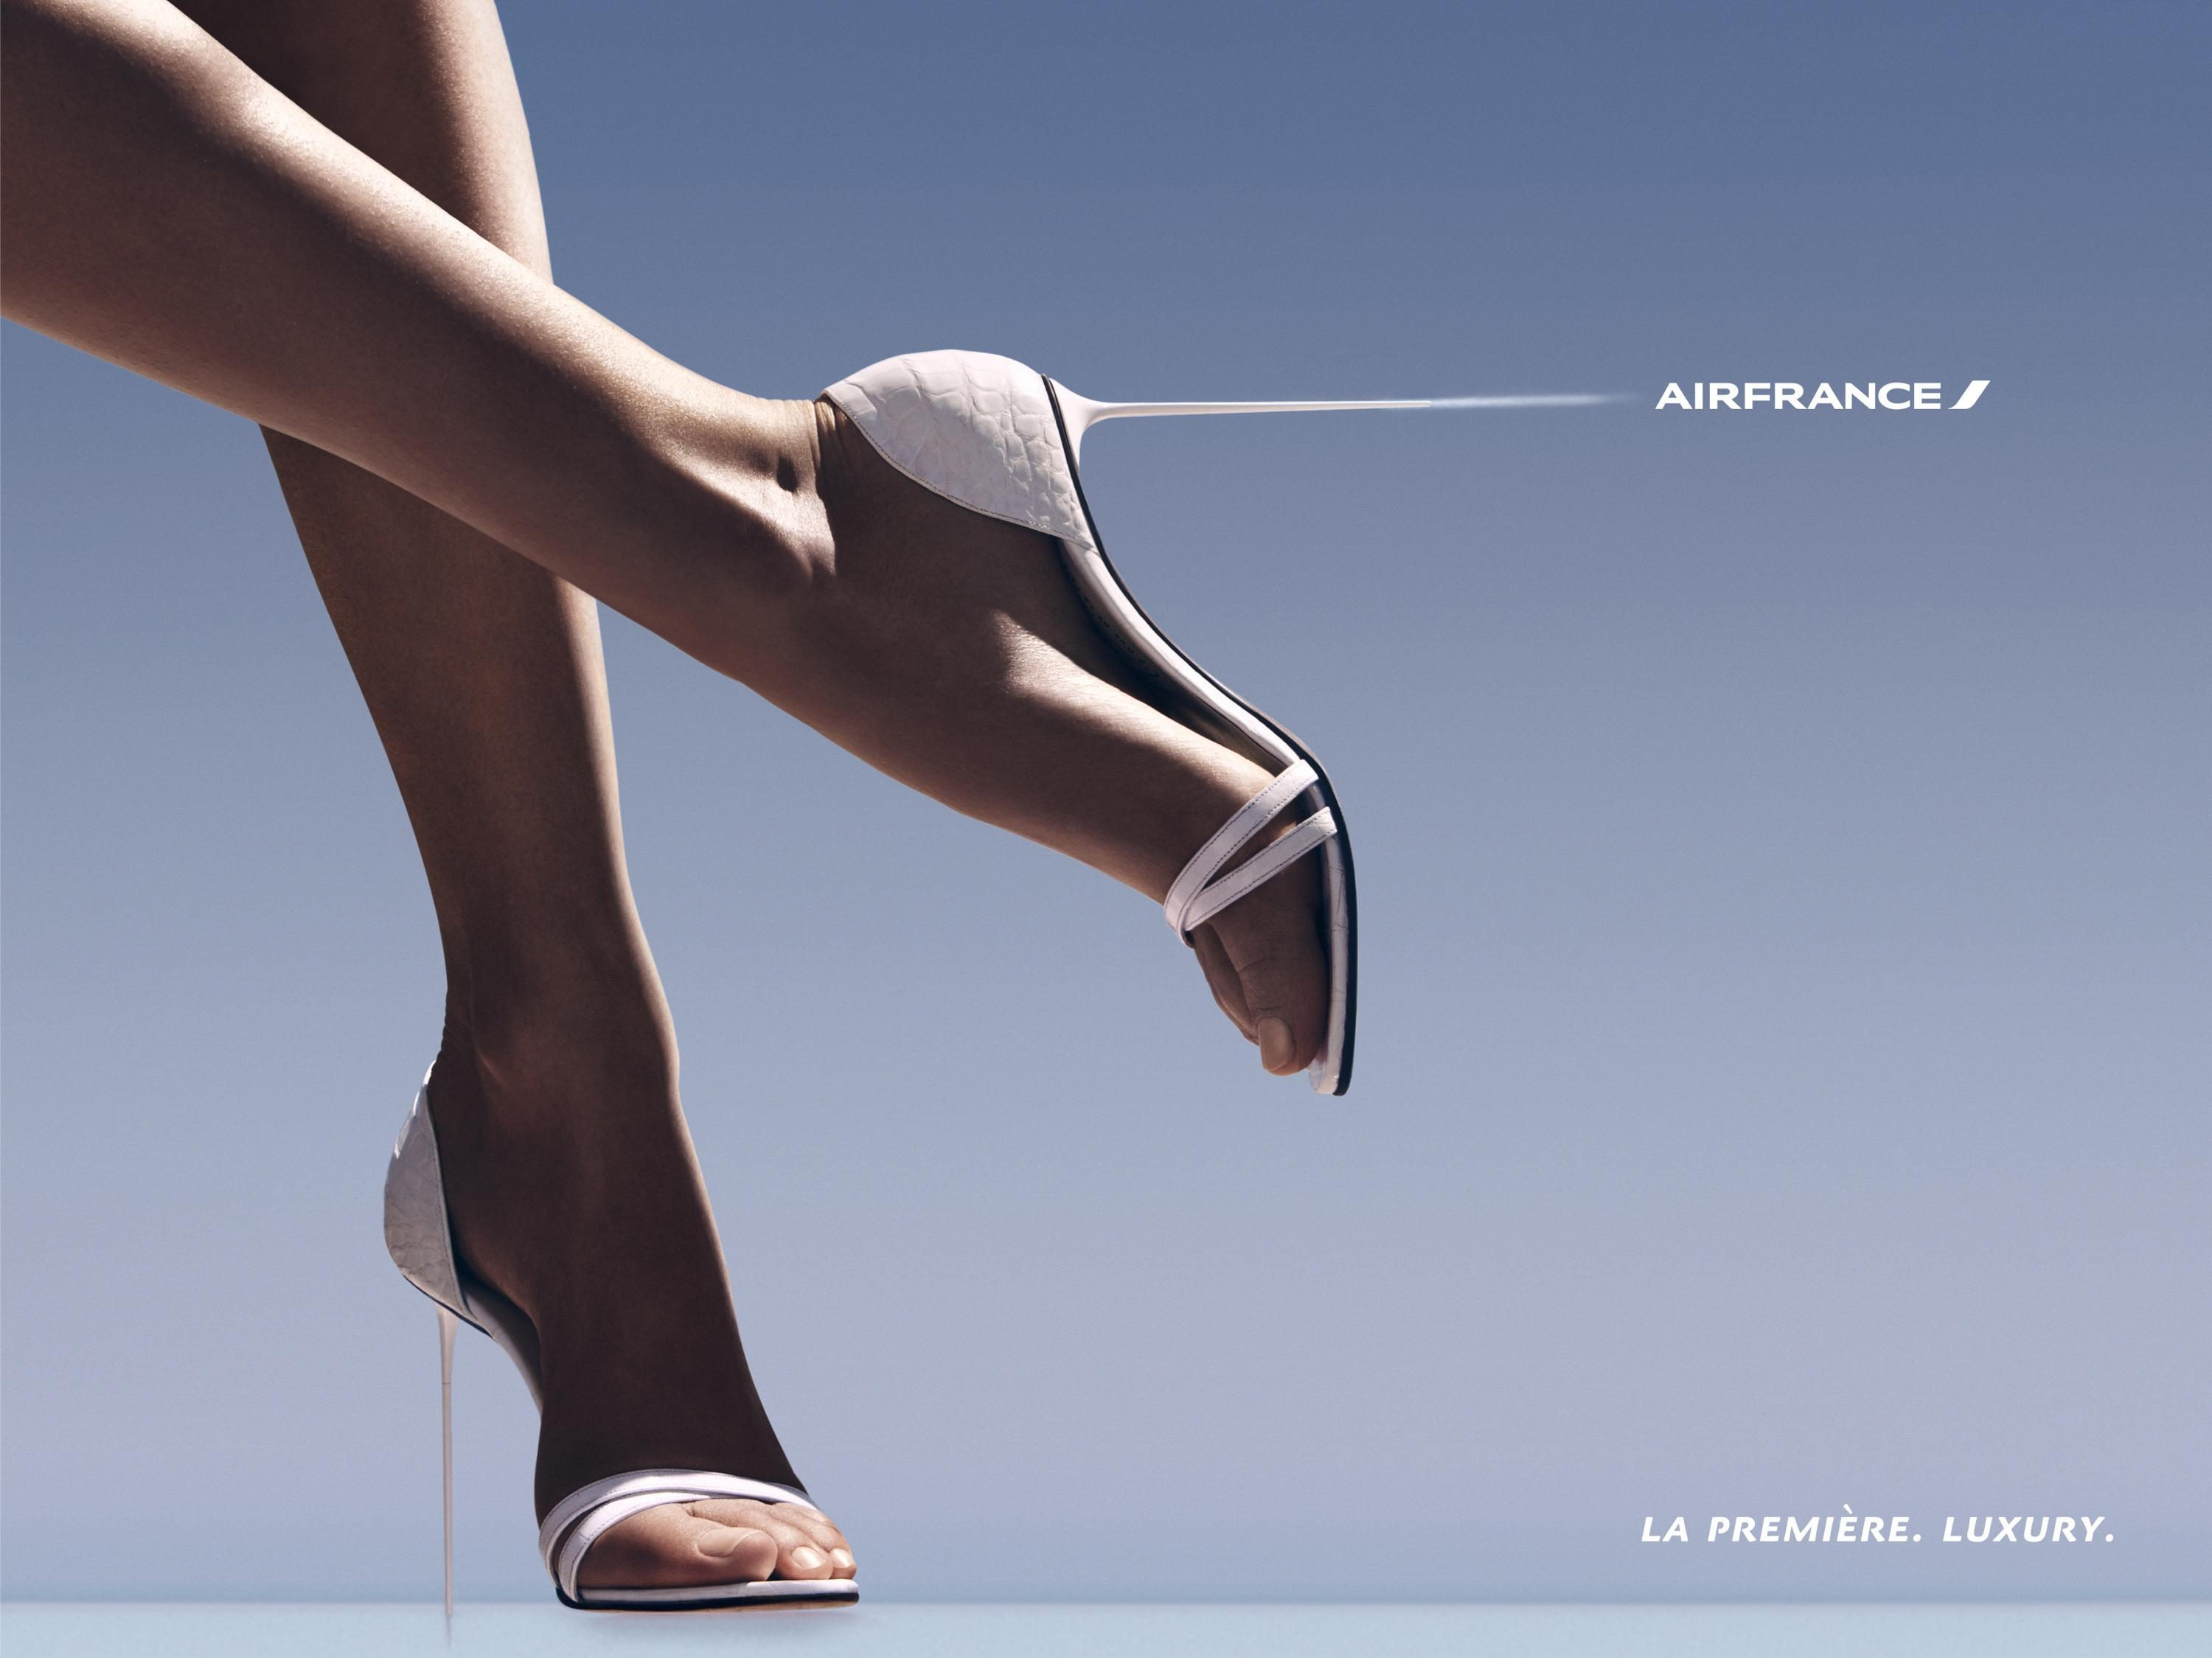 Air France Airline: Corset, Heel, Parasol, Panther - Adeevee